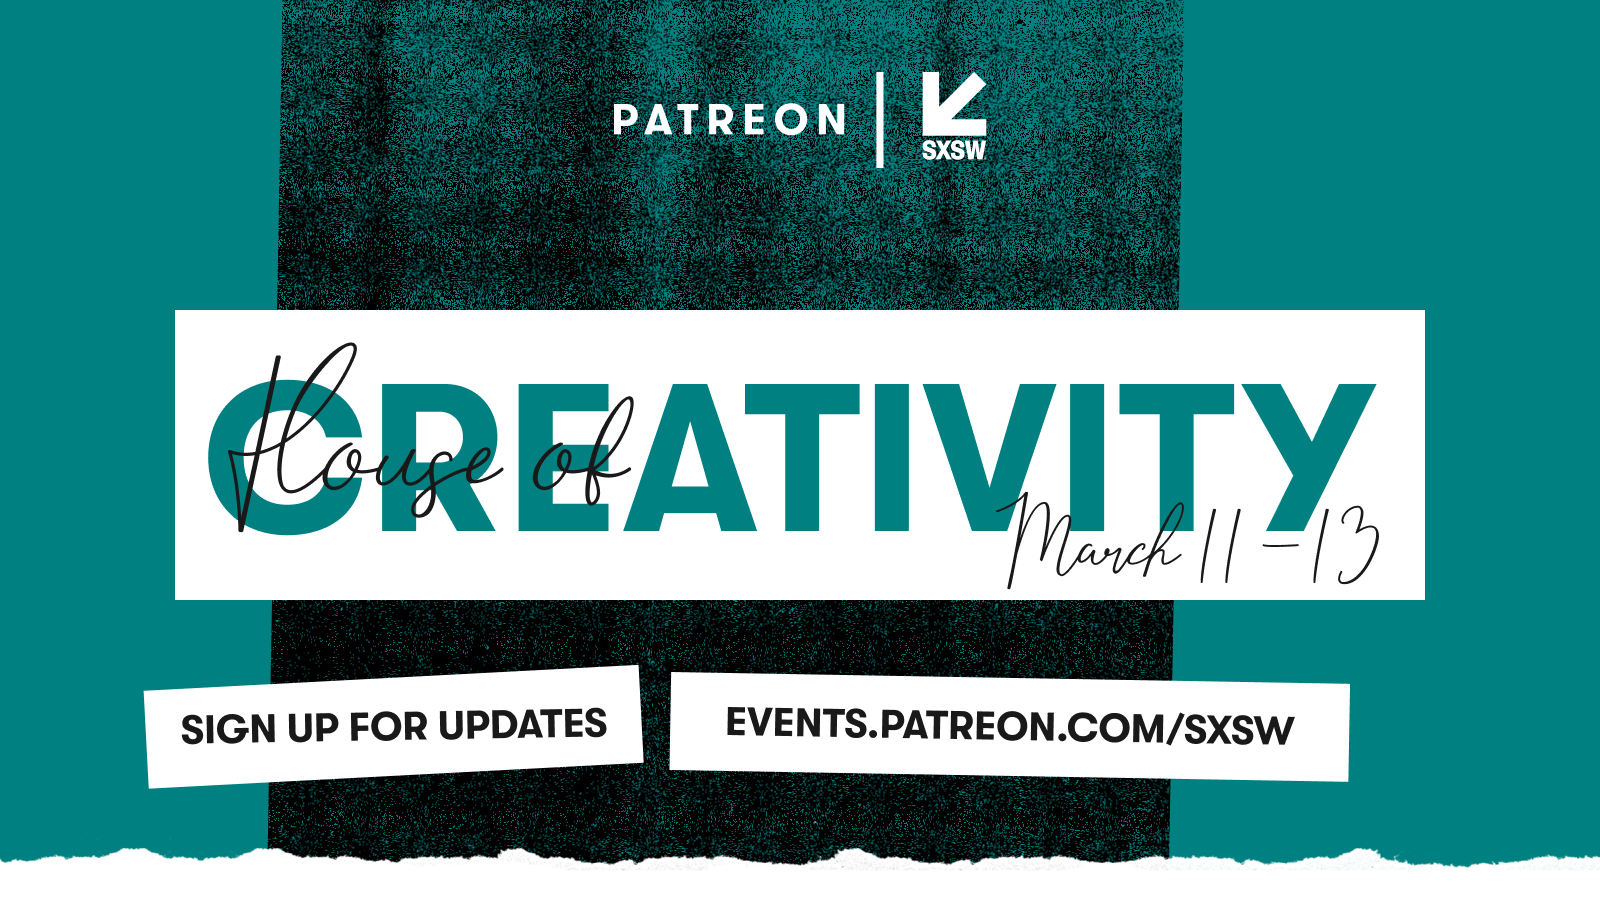 Patreon is going to SXSW 2019: Join us at the House of Creativity March 11-13